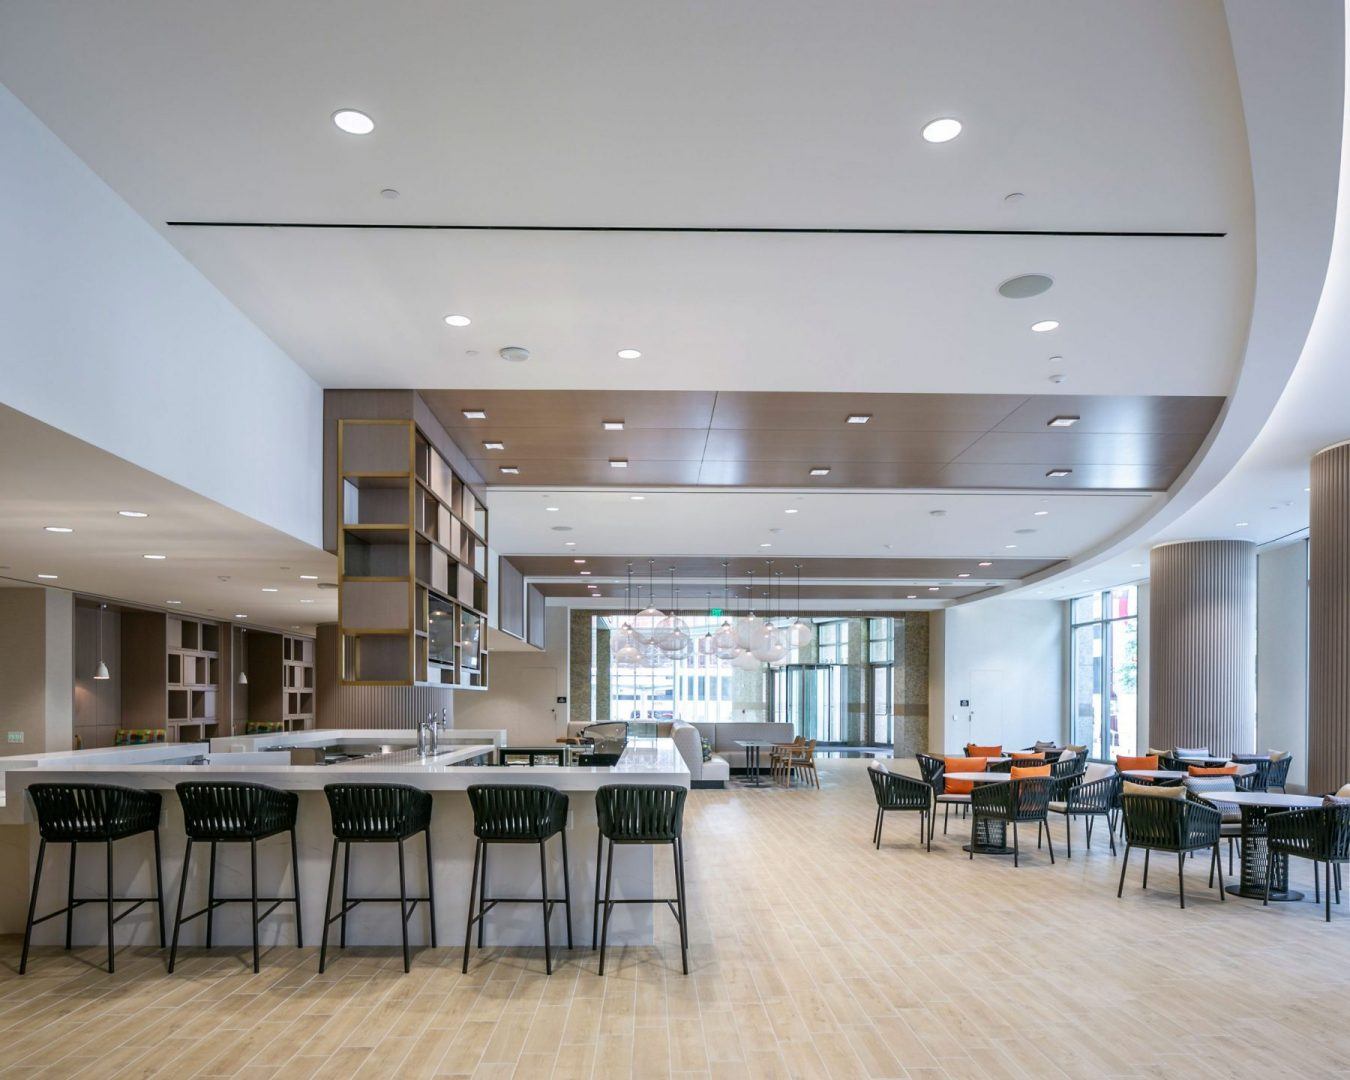 Lobby Renovation Architecture Building Repositioning Design Hospitality Dining